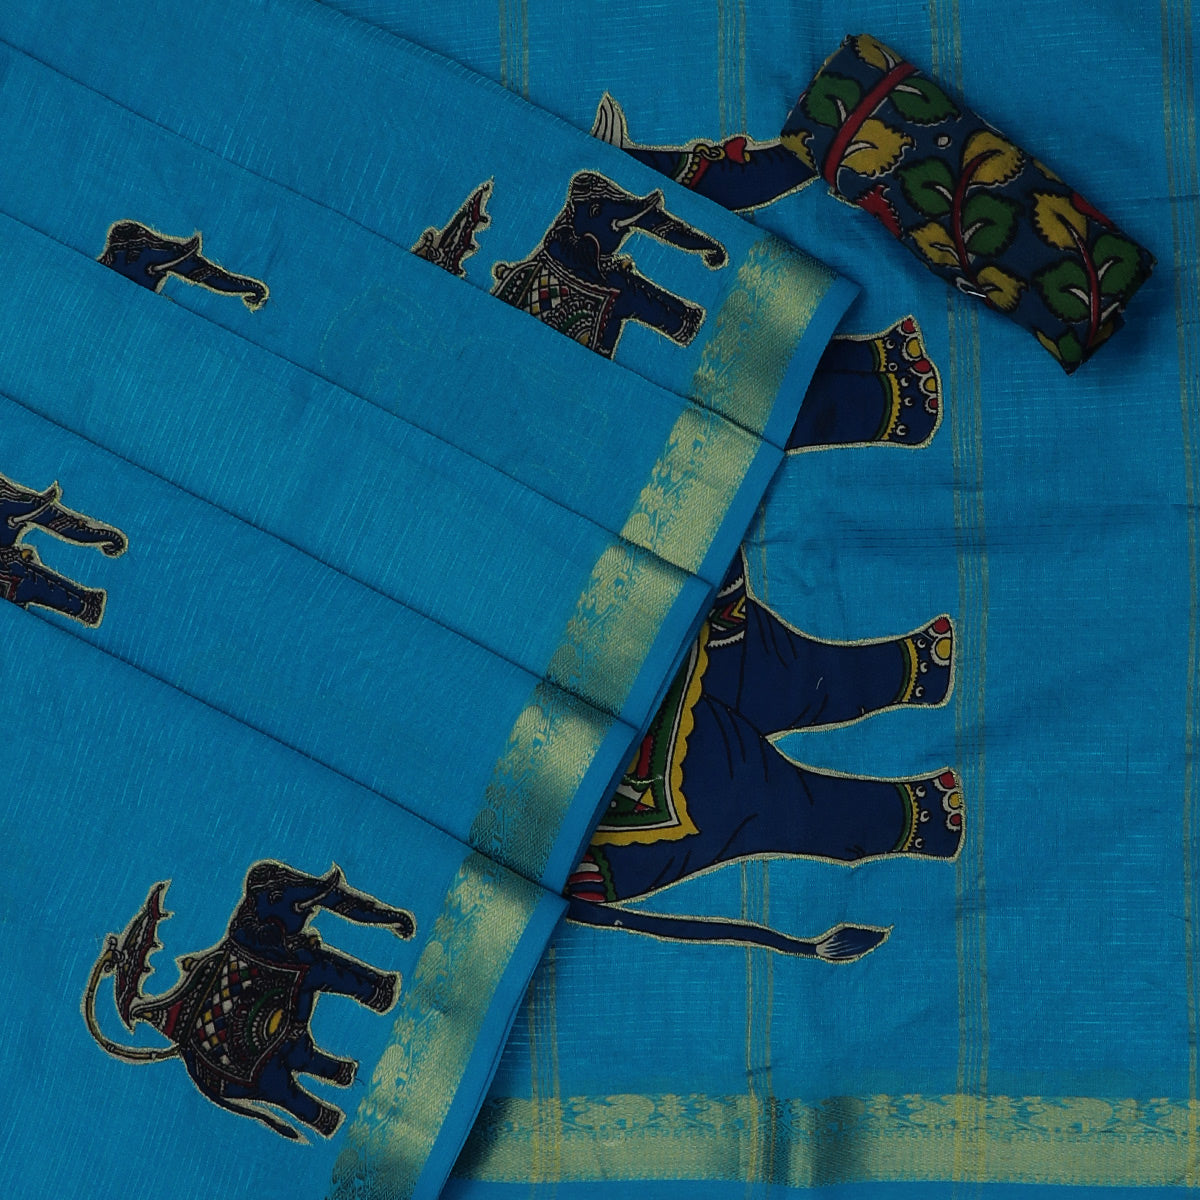 Silk Cotton Saree-Sky Blue with Simple Zari border and Kalamkari applique work